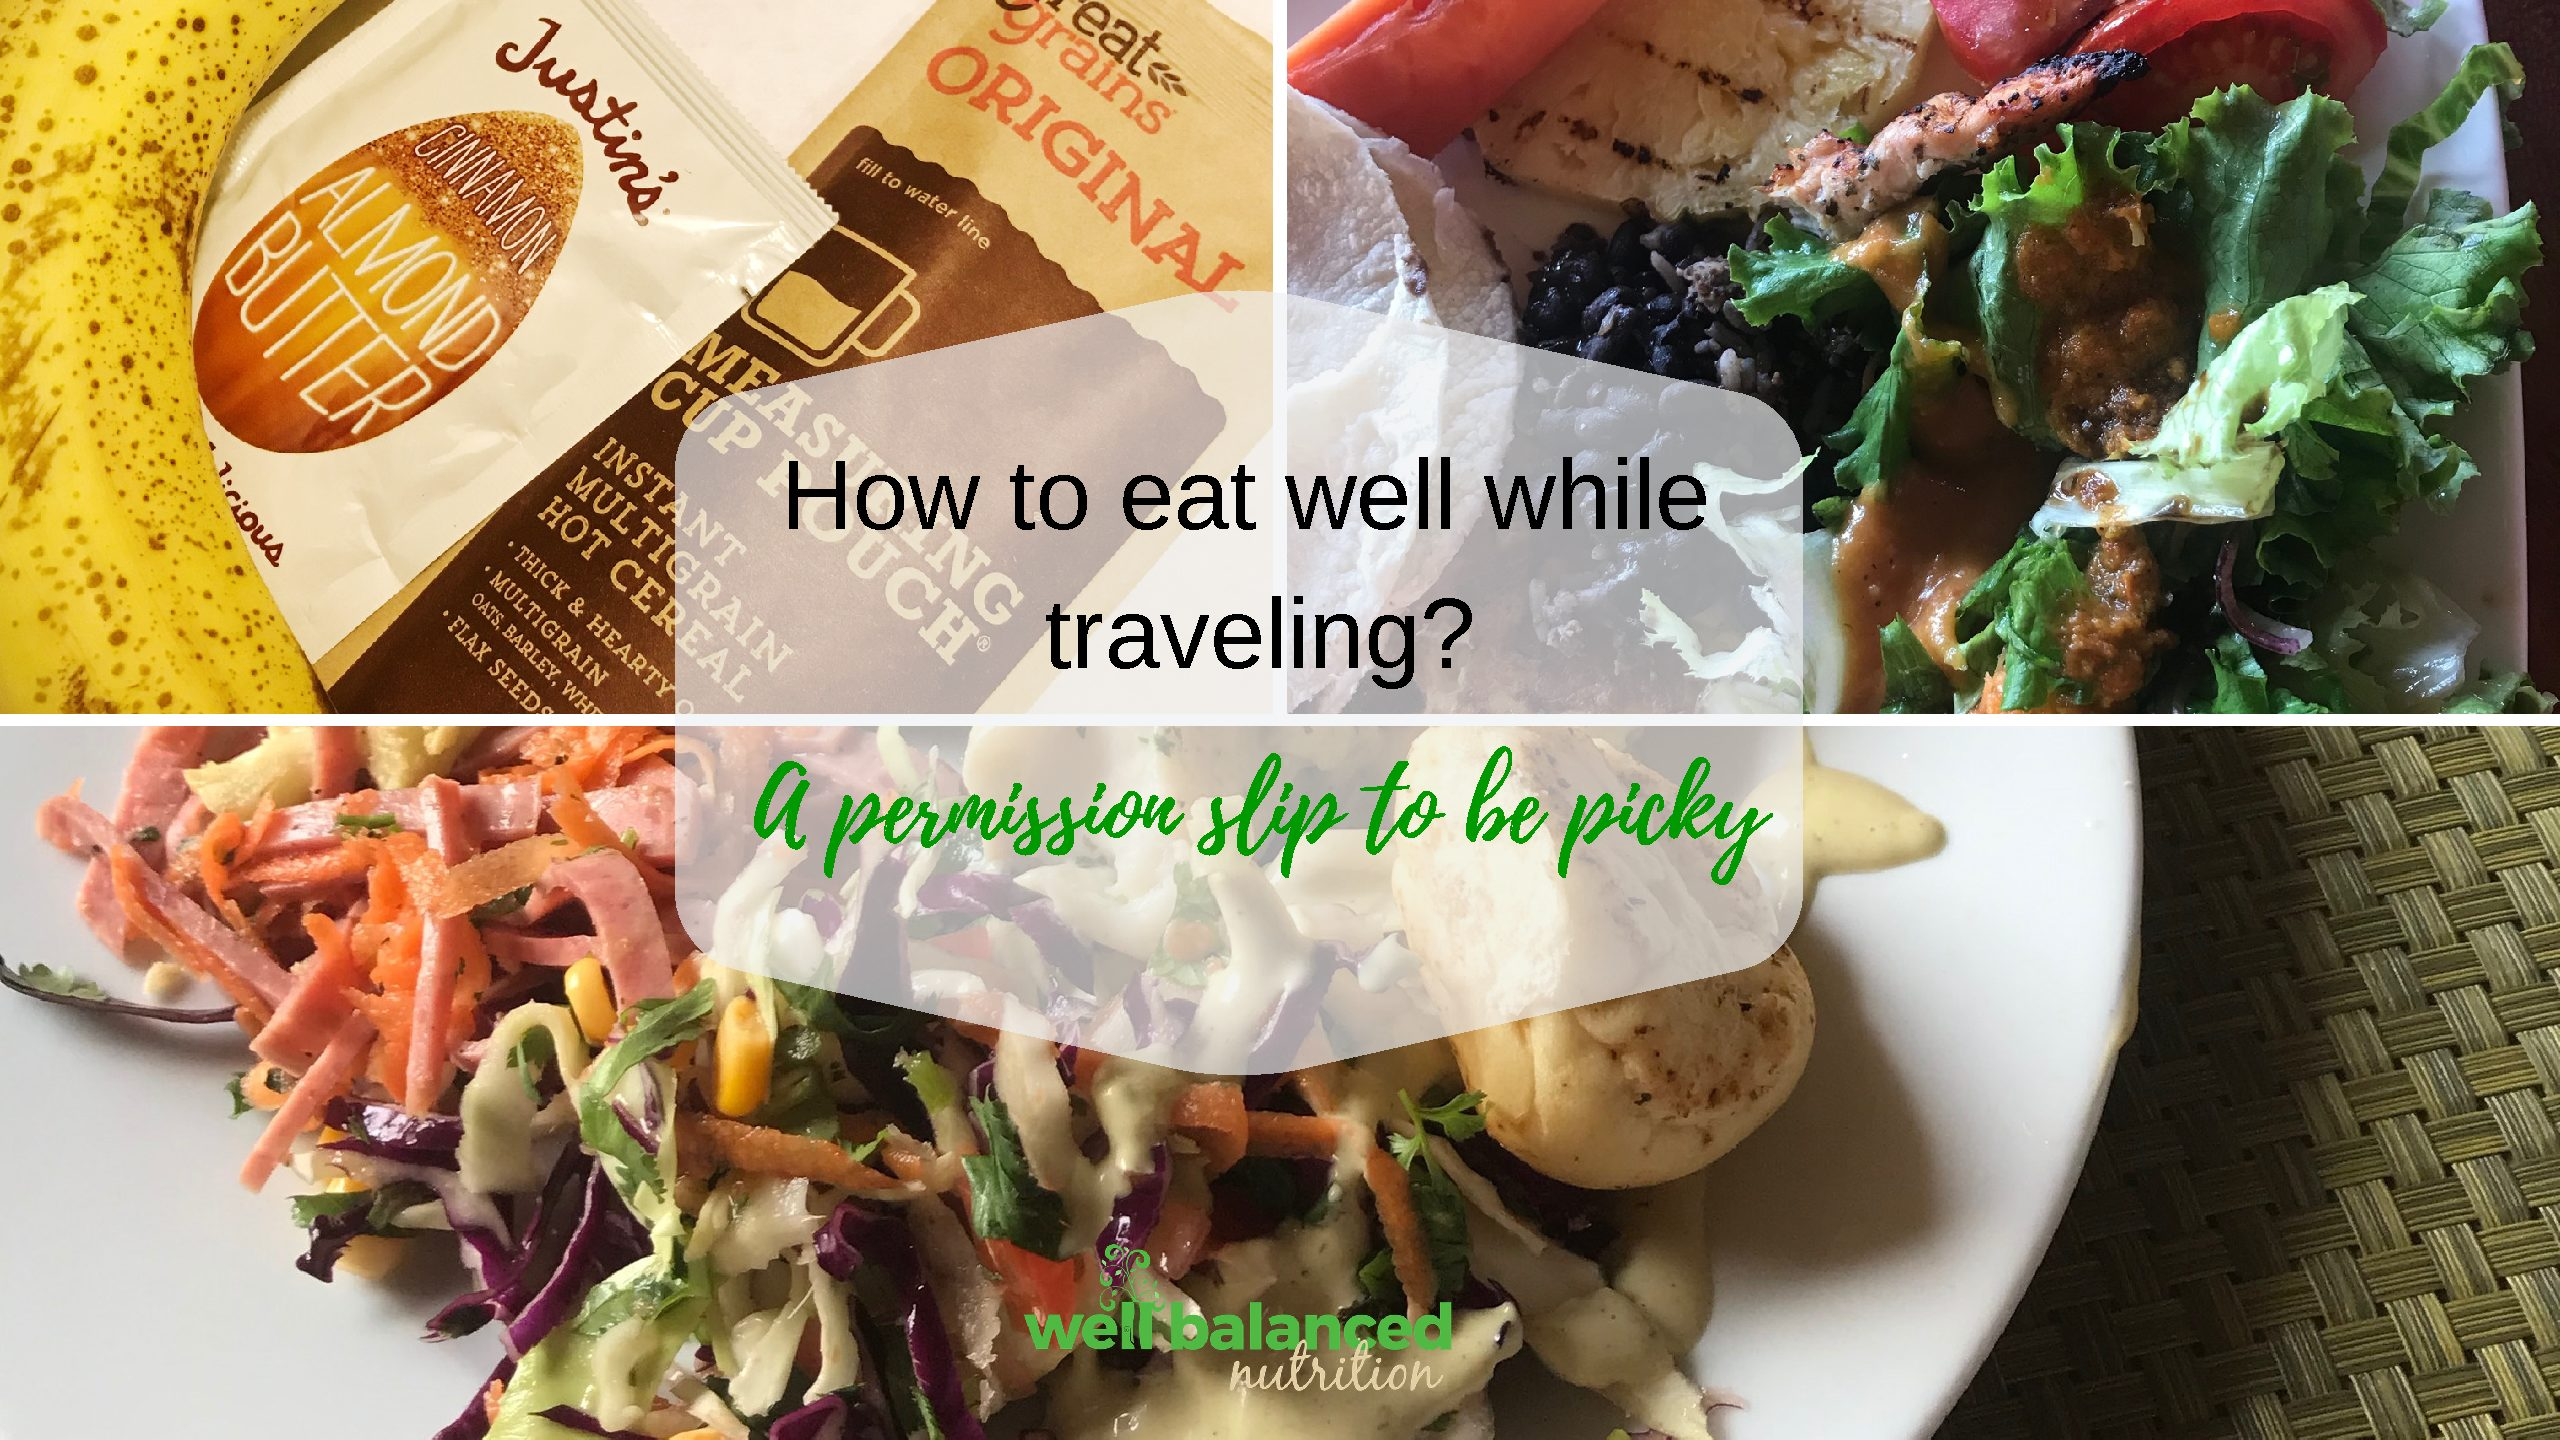 How to eat well while traveling? A permission slip to be picky